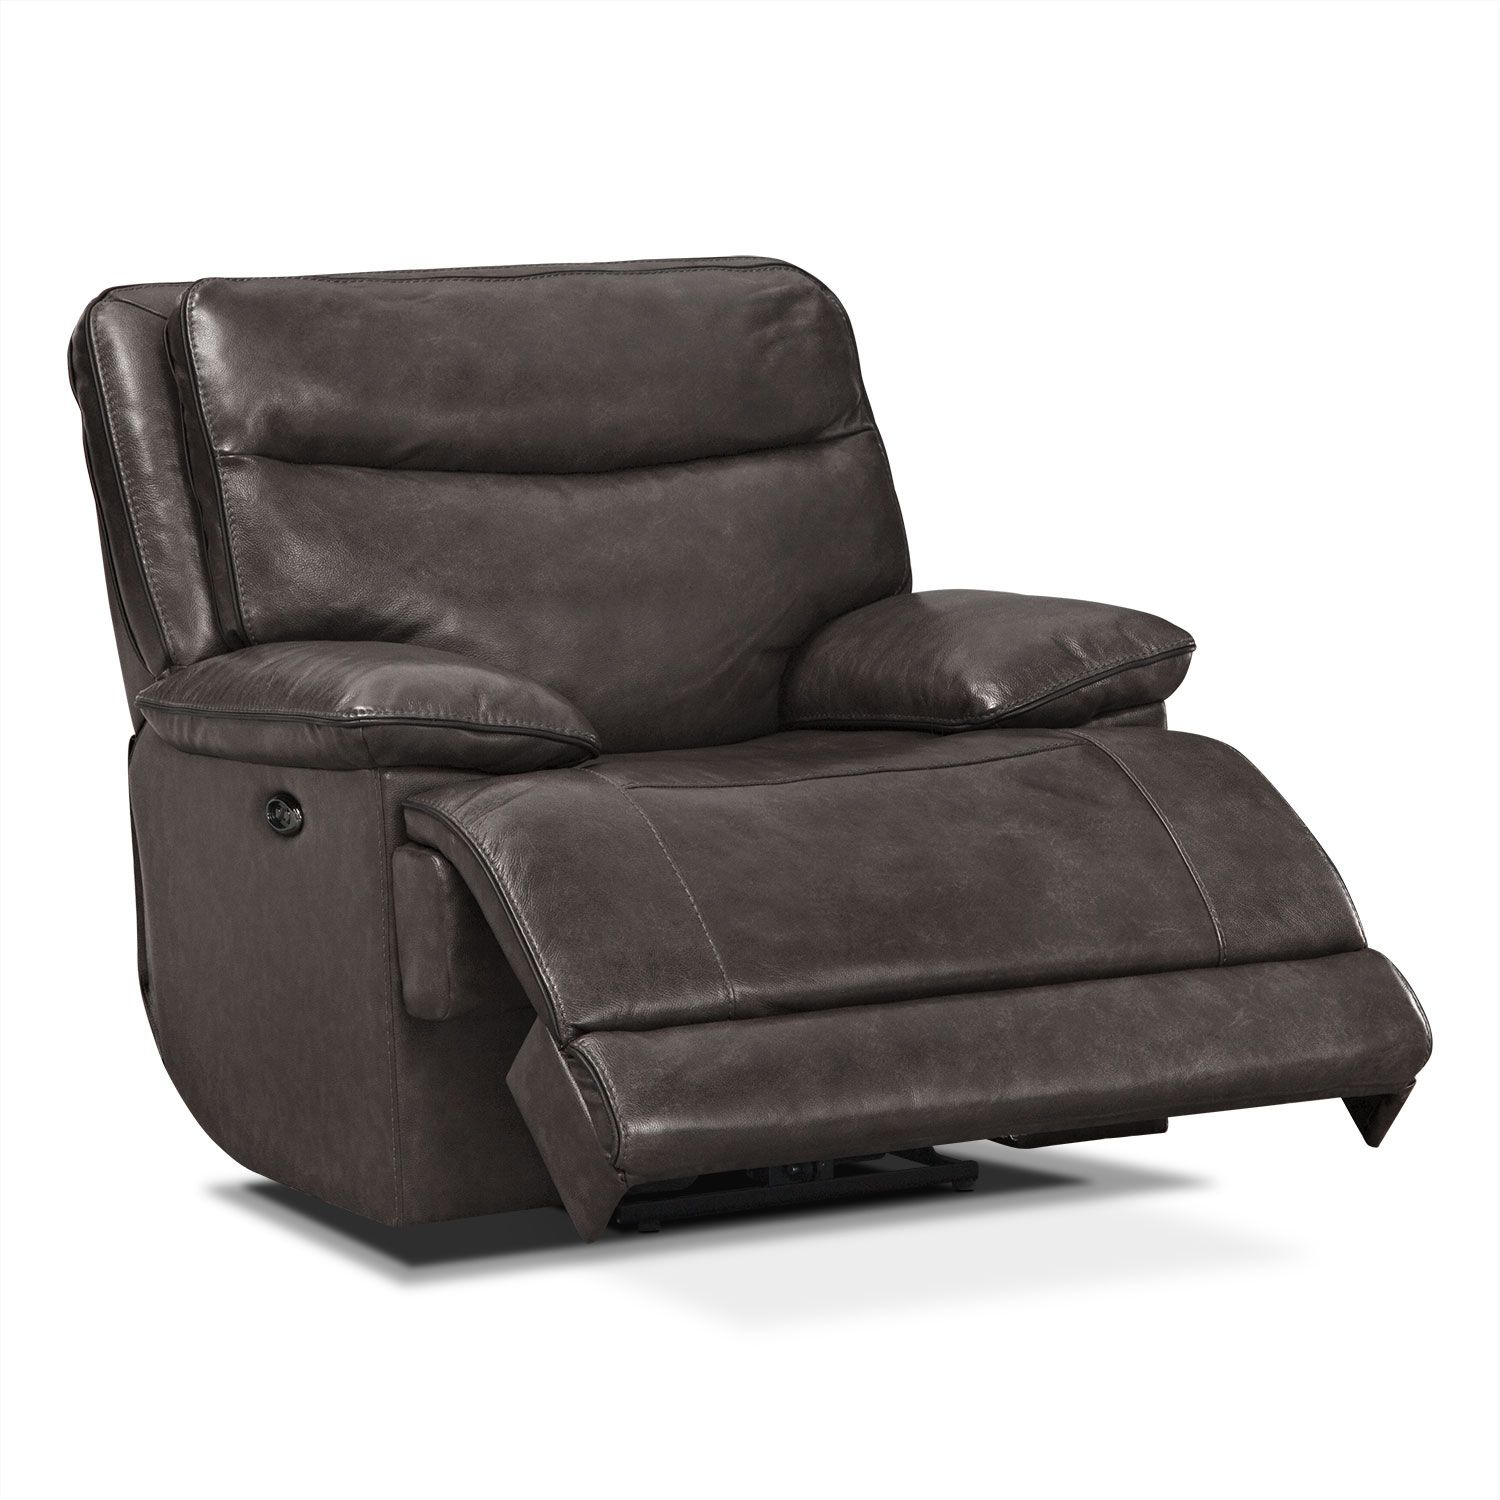 Marvelous Monaco Power Recliner Value City Furniture Furniture Cjindustries Chair Design For Home Cjindustriesco